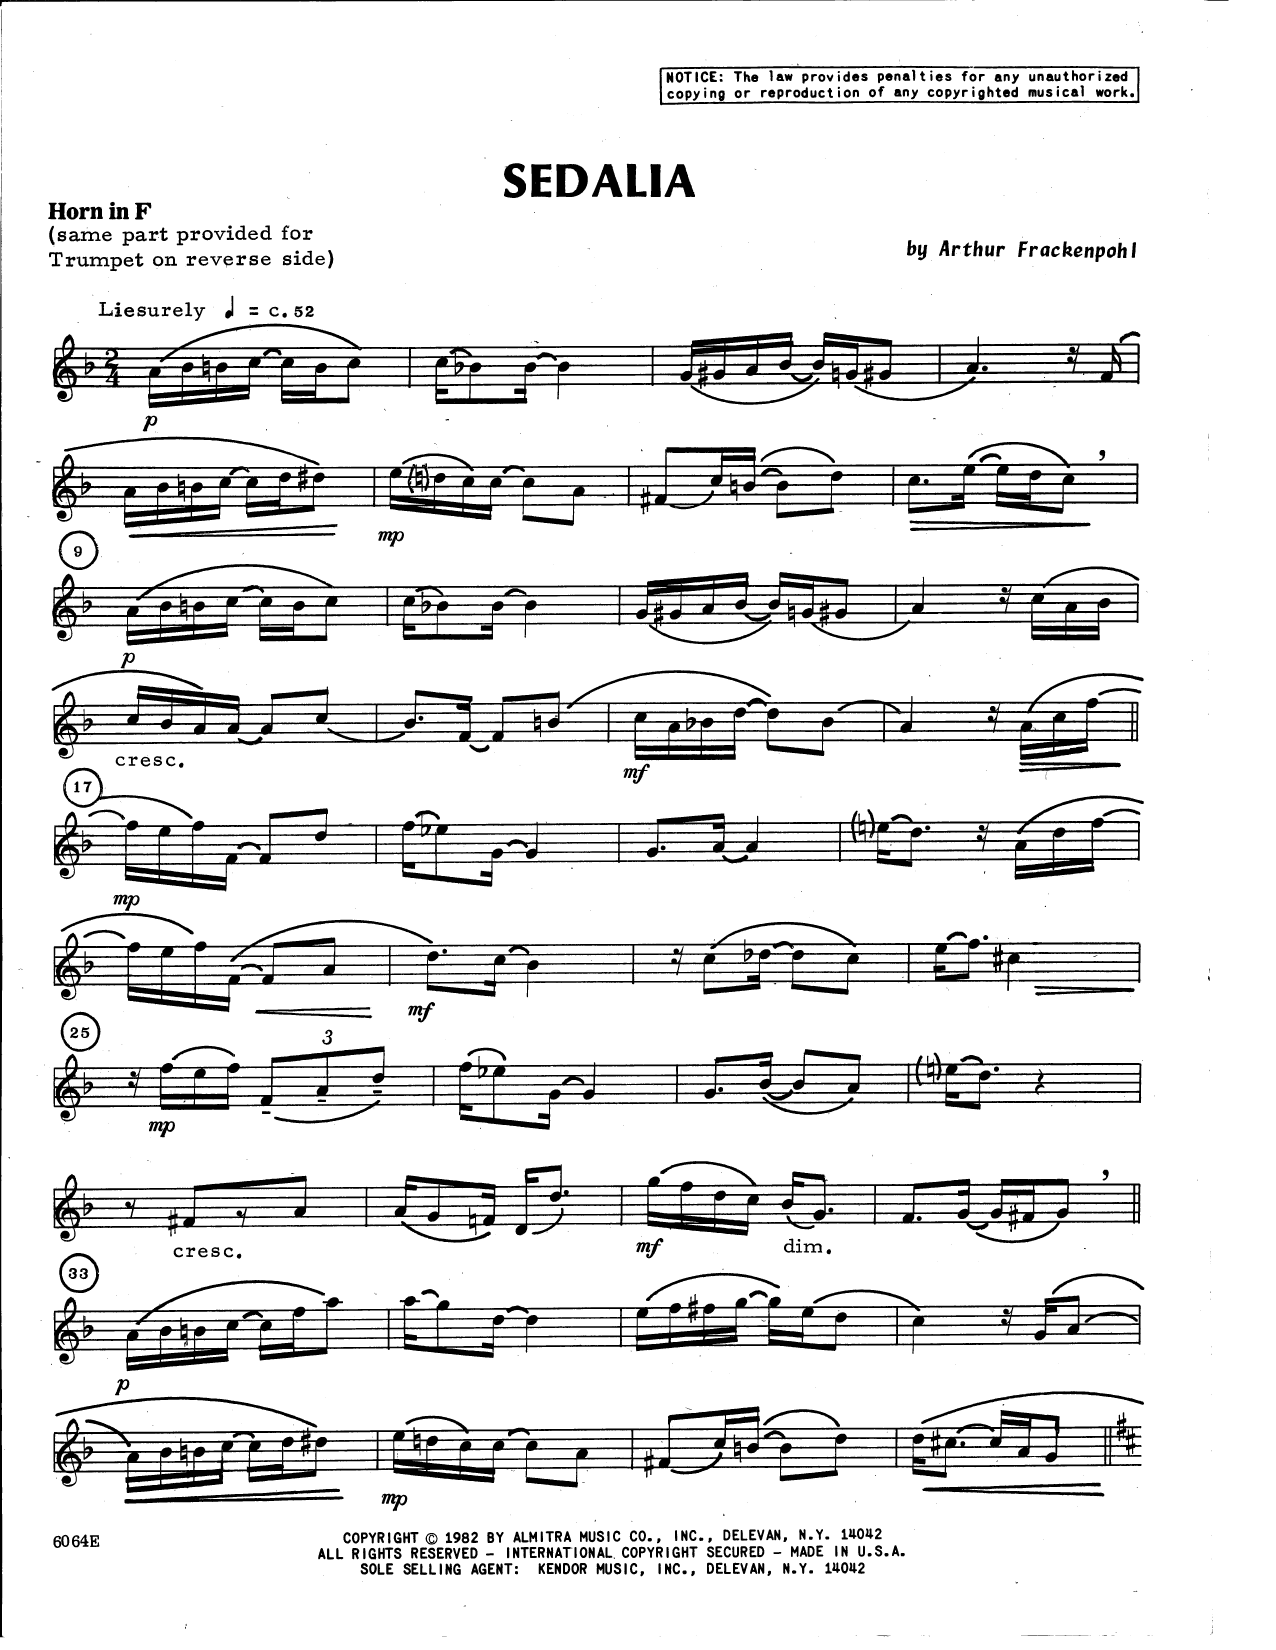 Arthur Frackenpohl Sedalia - Horn in F sheet music notes and chords. Download Printable PDF.